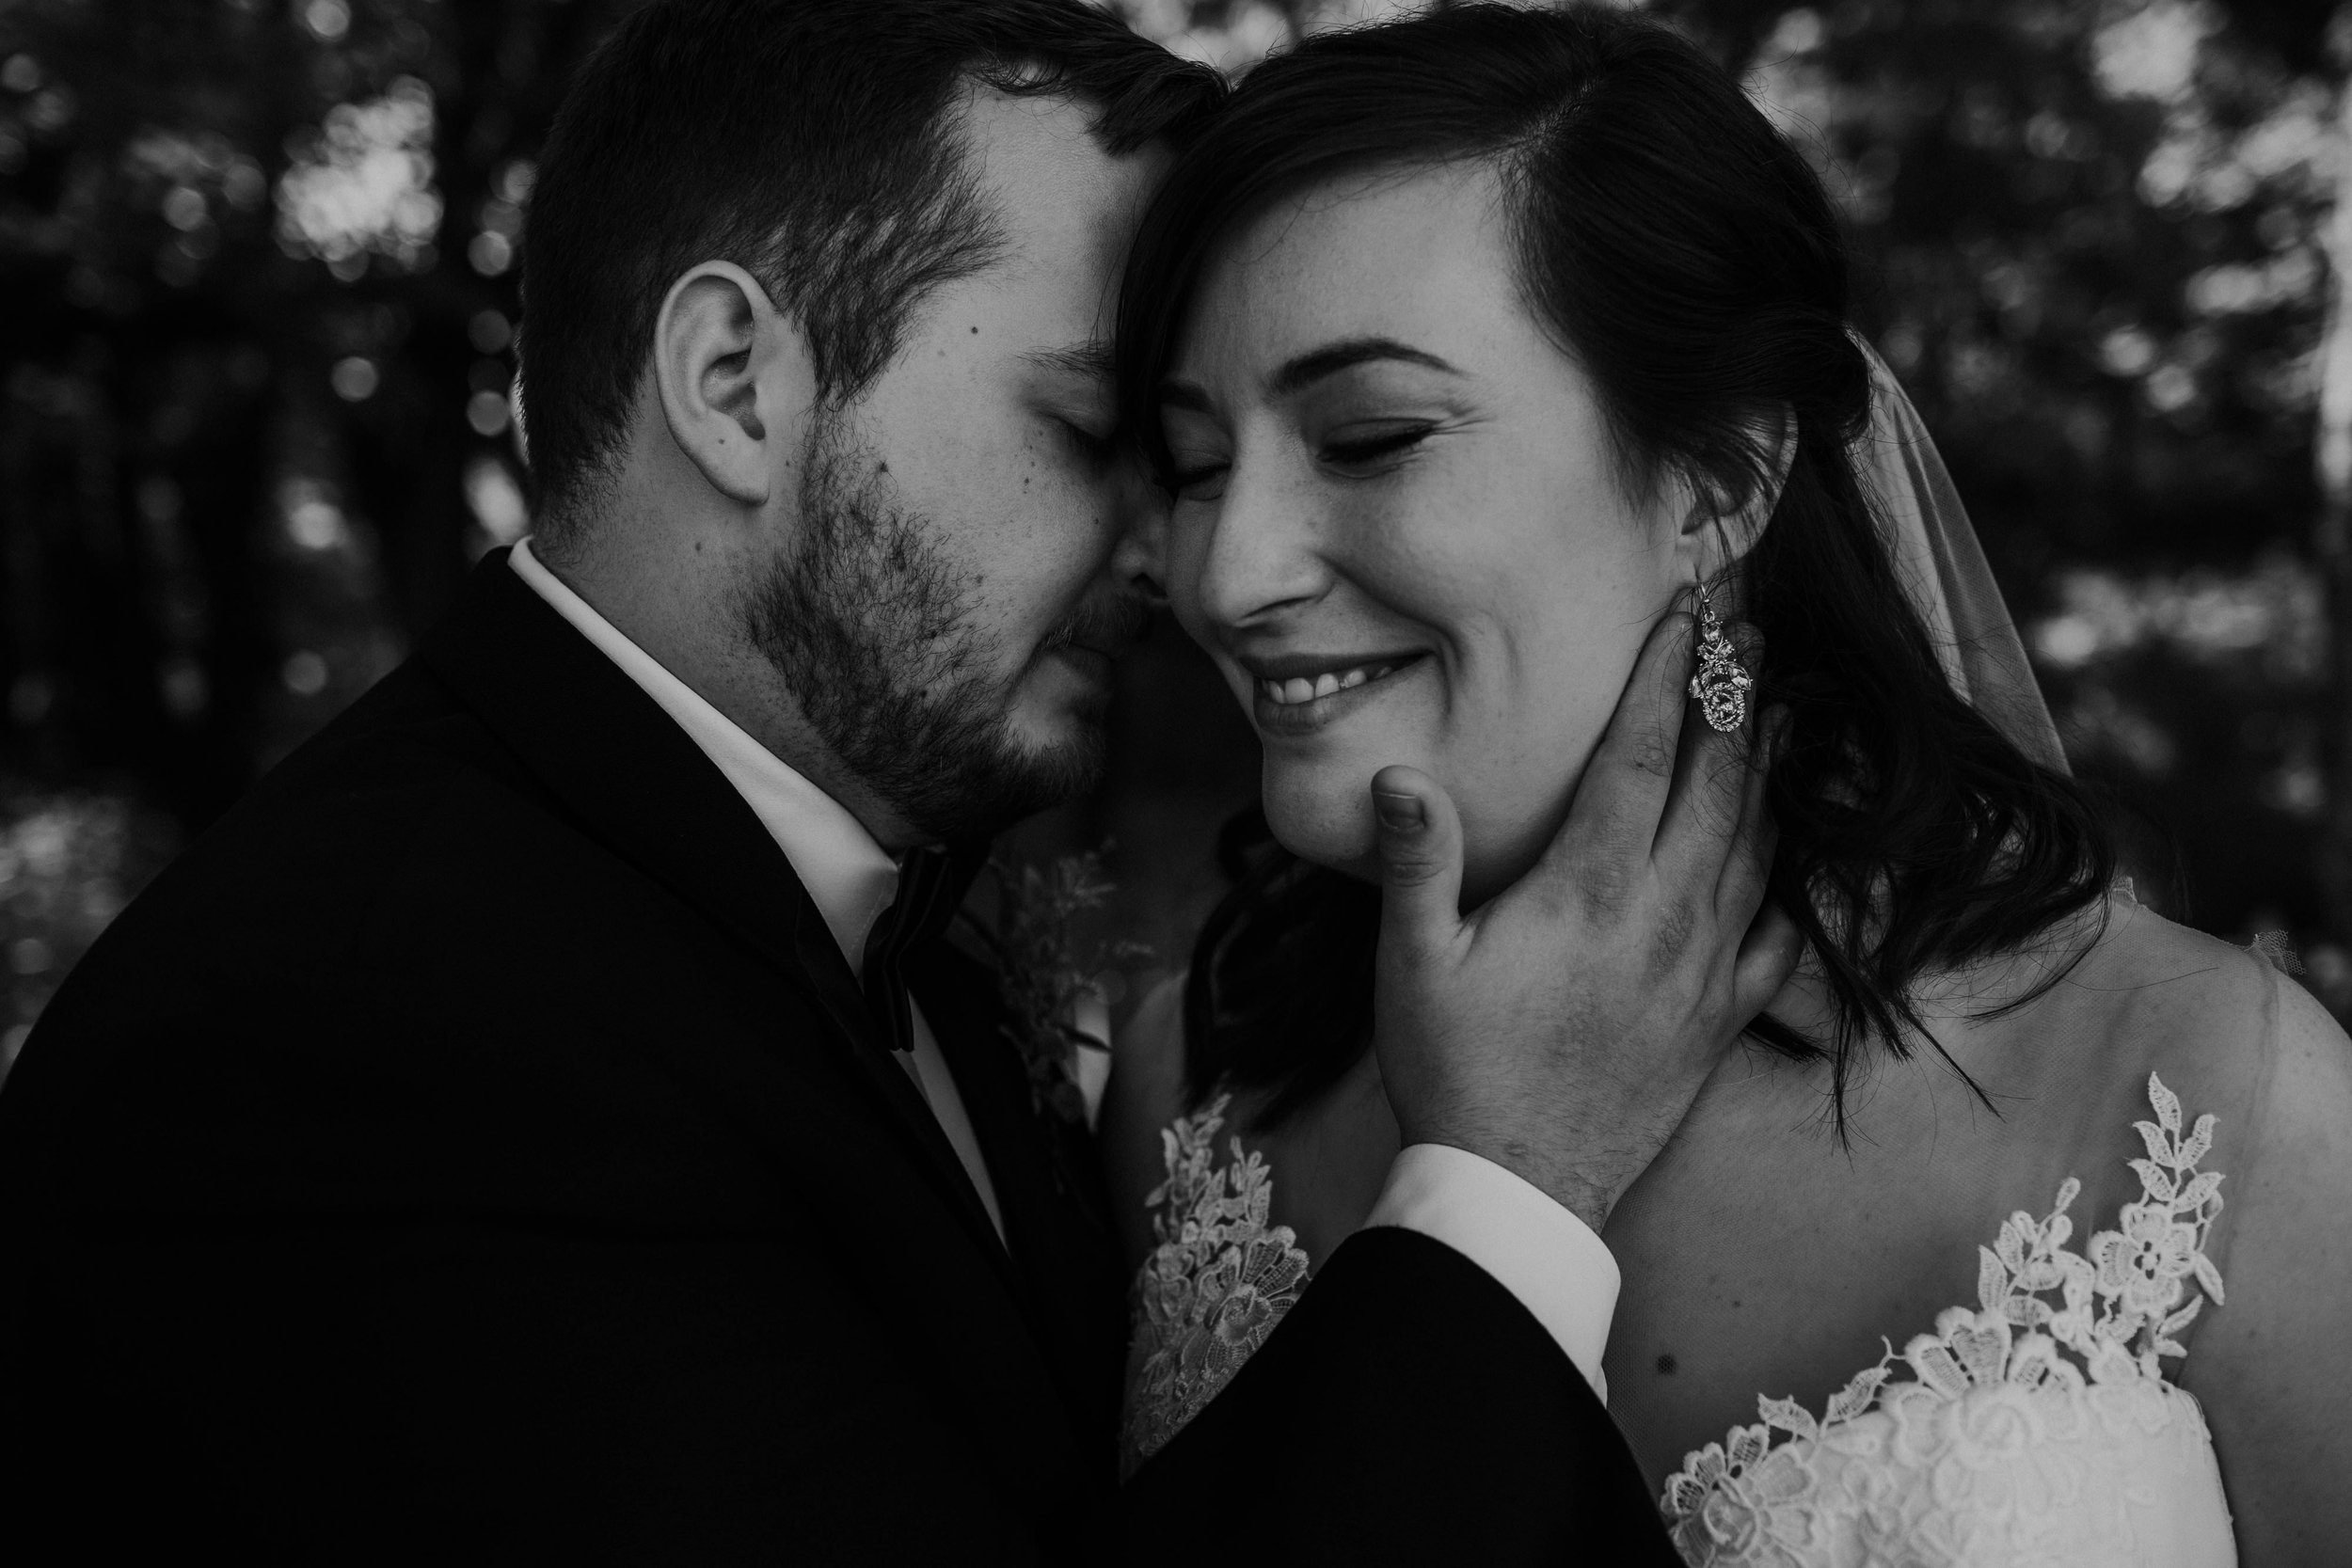 columbus ohio wedding photographer grace e jones photography72.jpg